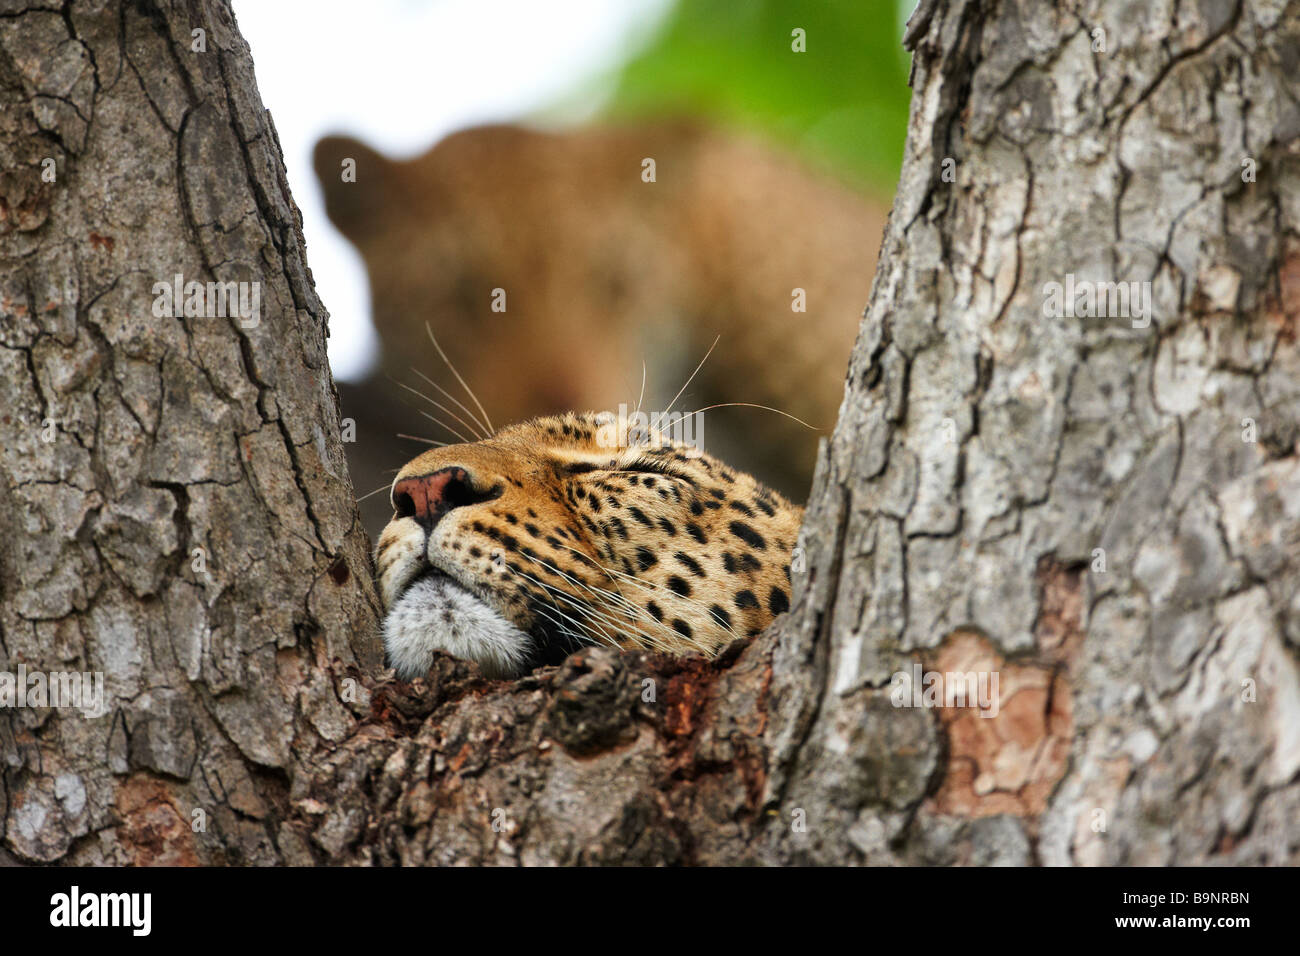 leopards resting in a tree, Kruger National Park, South Africa - Stock Image